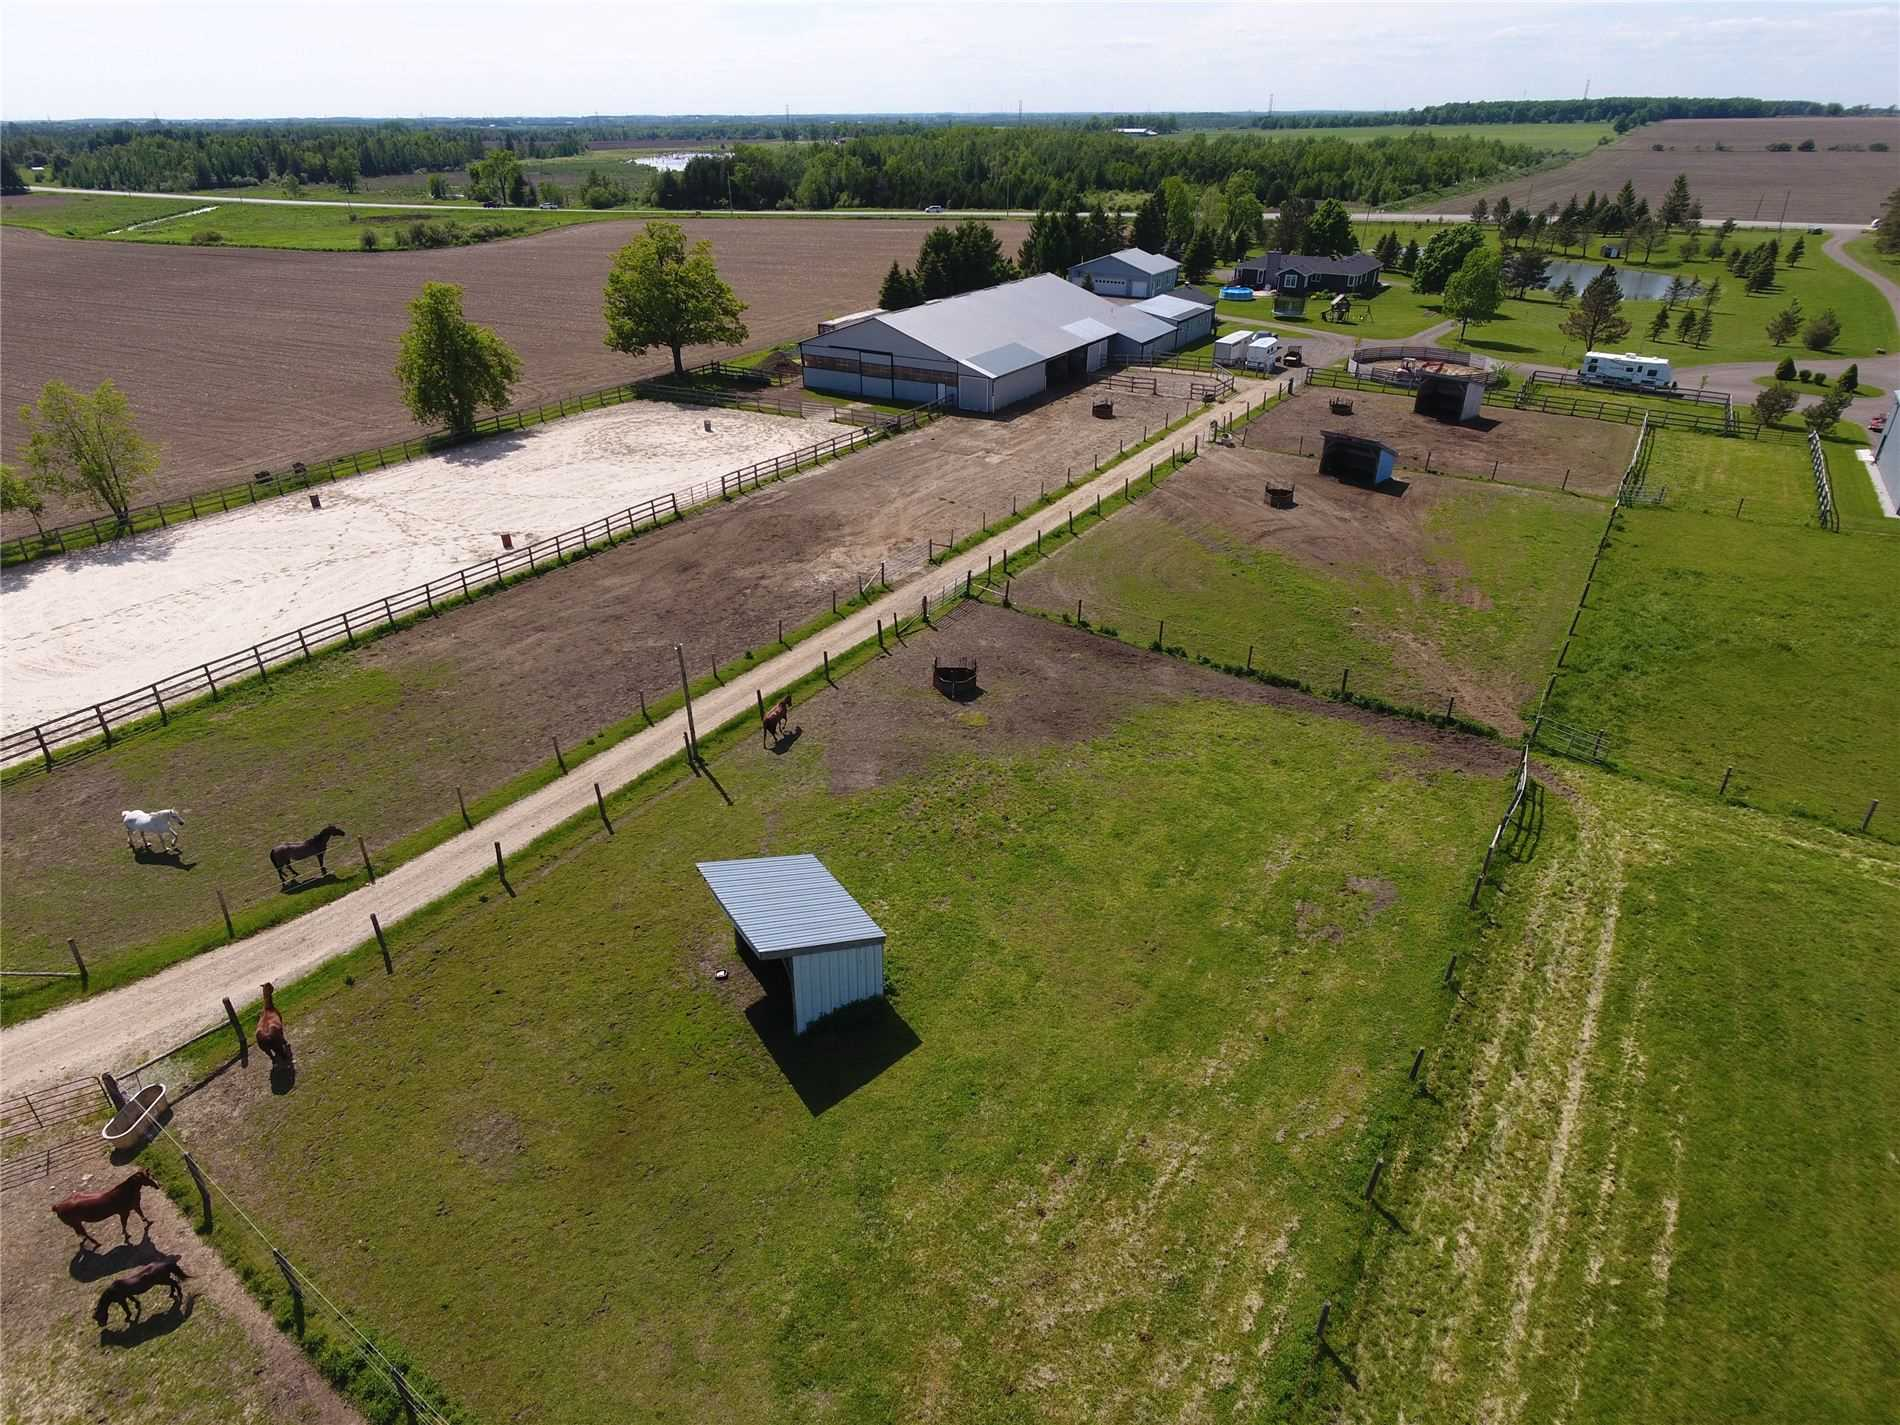 064210 Dufferin Rd 3 Rd, East Garafraxa, Ontario L9W7J4, ,5 BathroomsBathrooms,Farm,For Sale,Dufferin Rd 3,X4818204